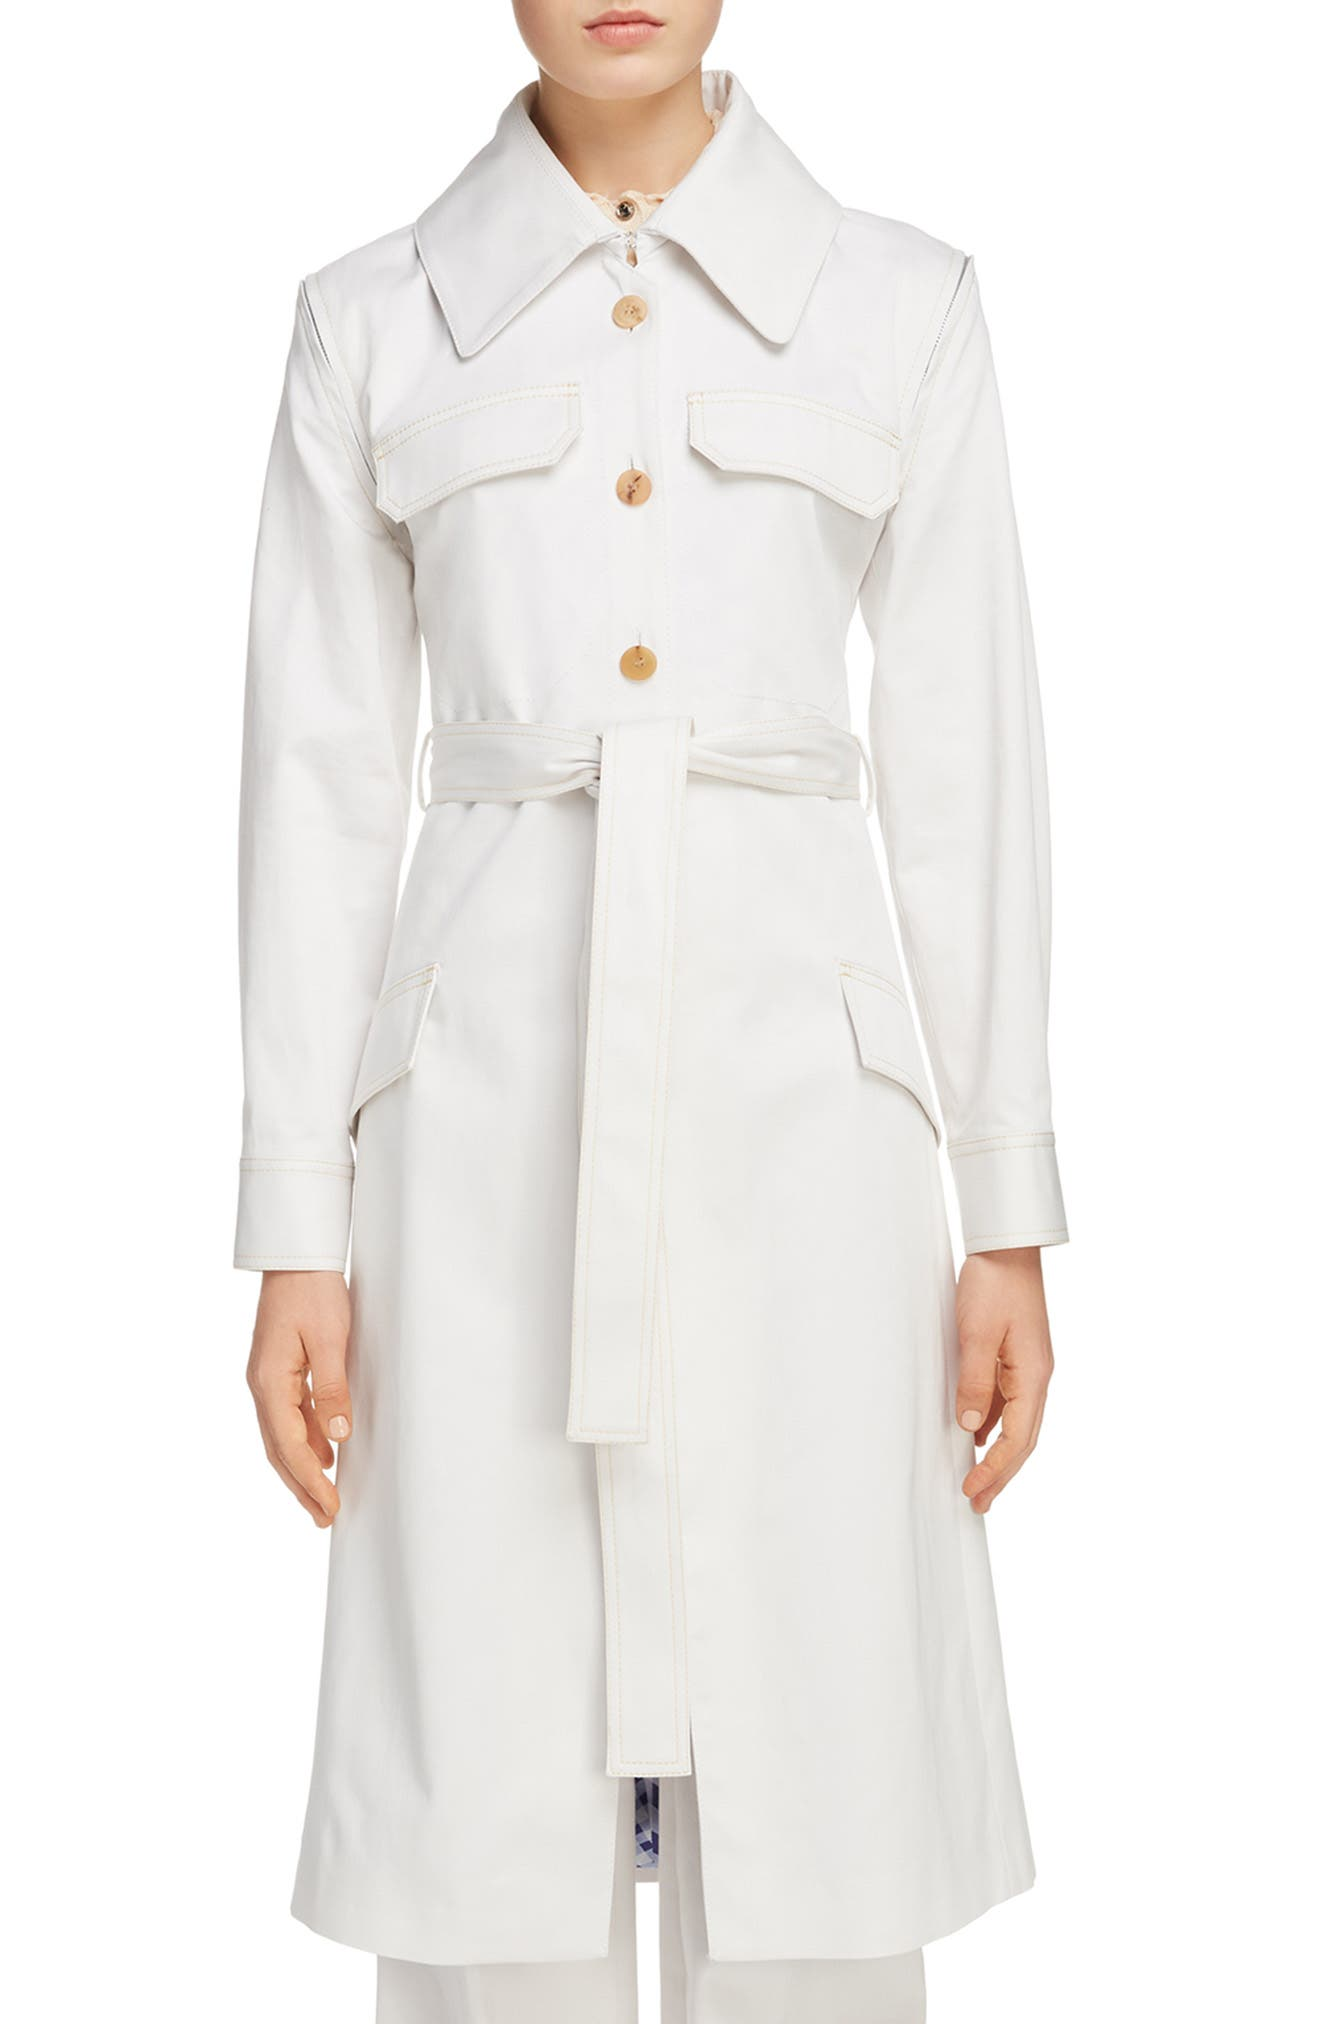 Olesia Removable Sleeve Belted Coat,                         Main,                         color, Dirty White